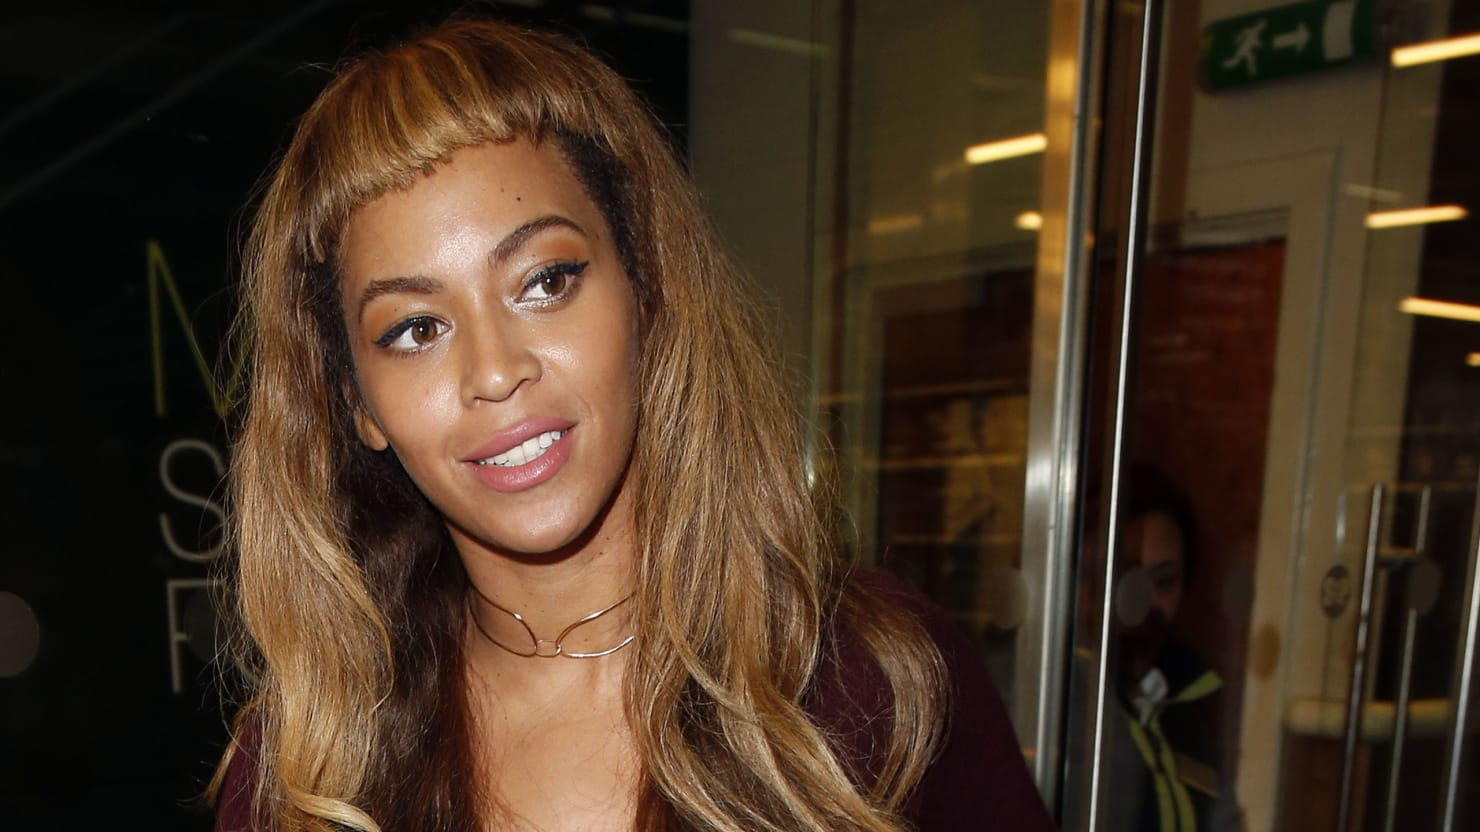 The Outrage Over Beyonce's Bettie Page Bangs: Why the Media Must Stop Objectifying Women